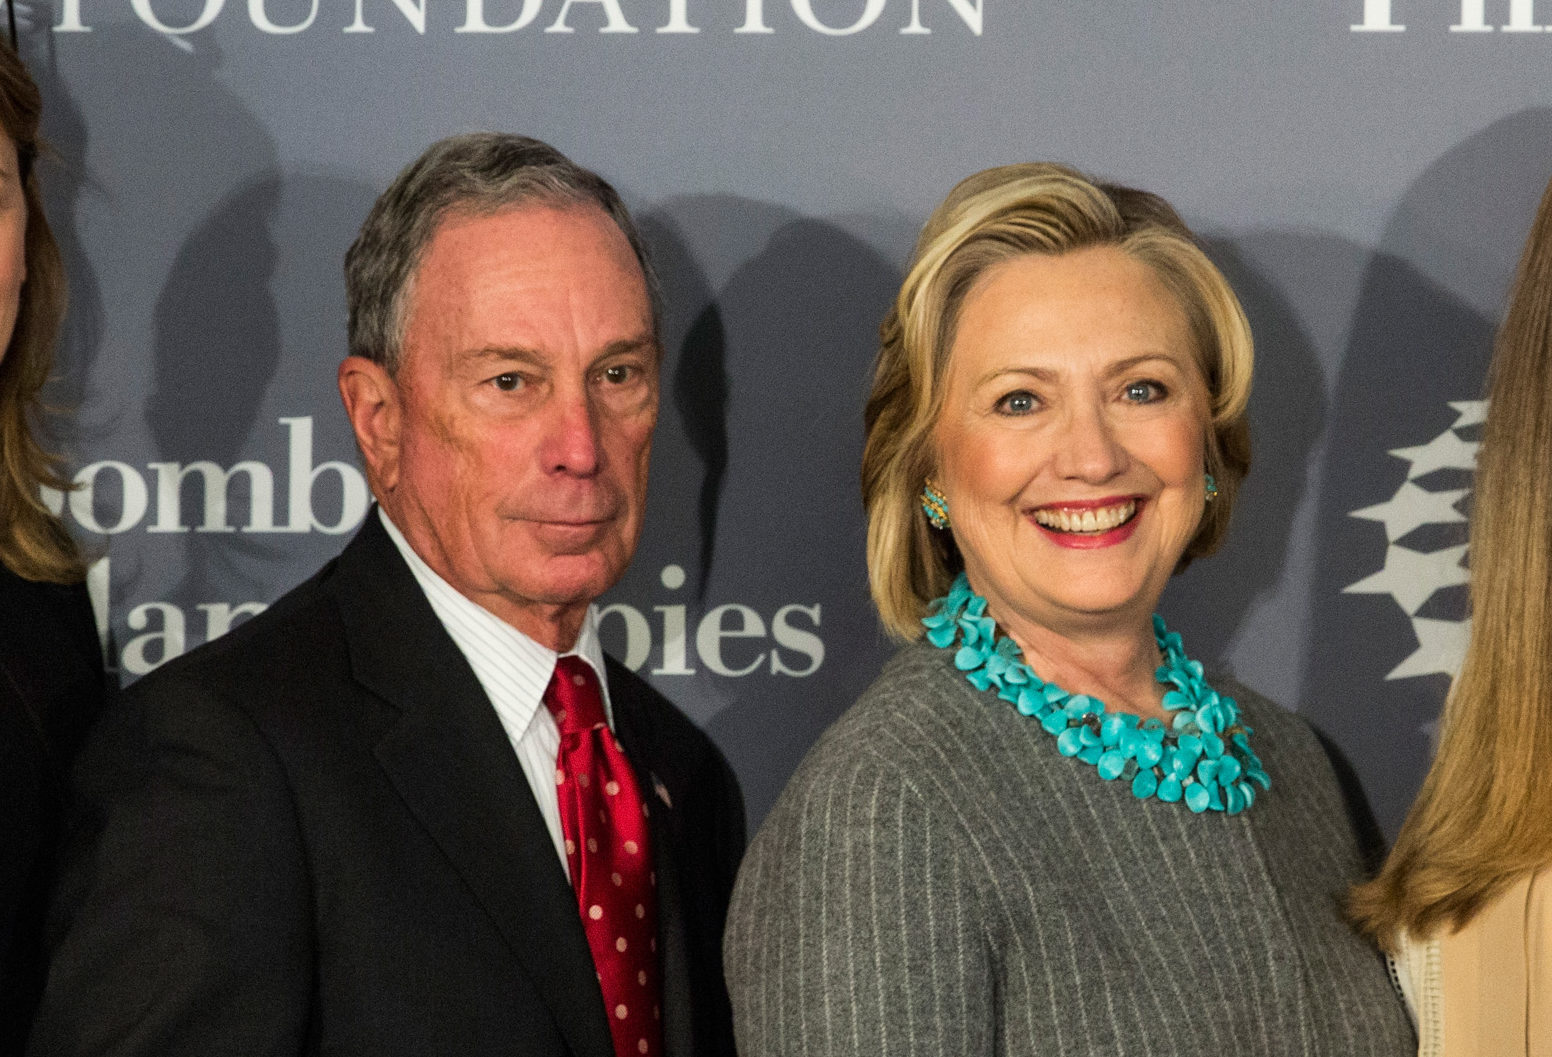 Trump World Reacts To Report Bloomberg Could Tap Hillary To Be His VP